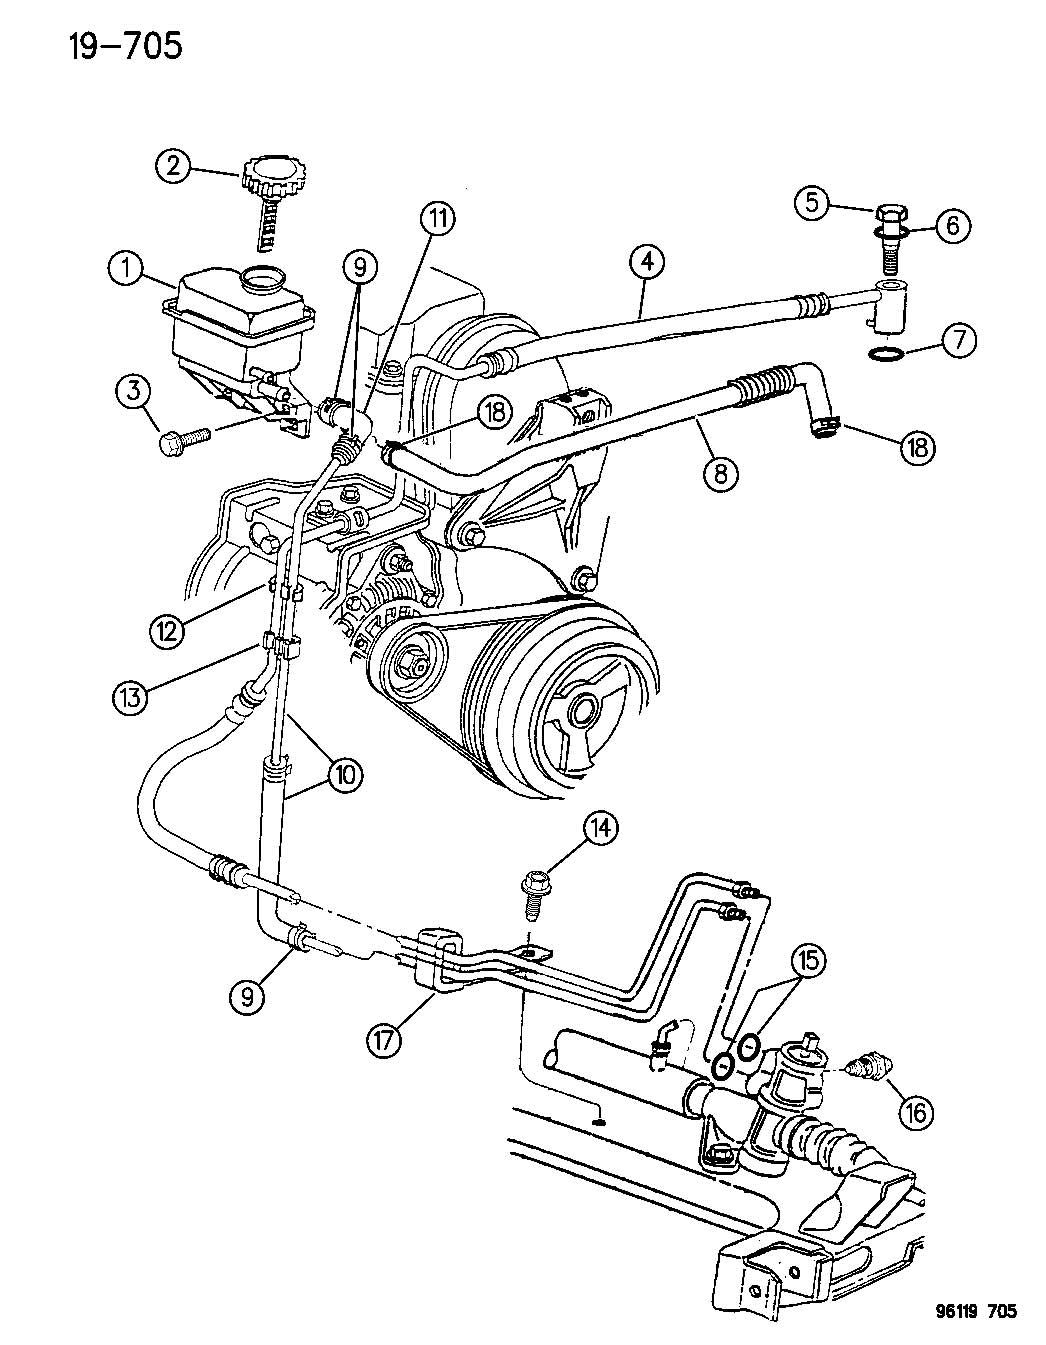 Repairguidecontent also 1997 kia sephia wiring diagrams together with 2000 further 1996 plymouth breeze parts diagram